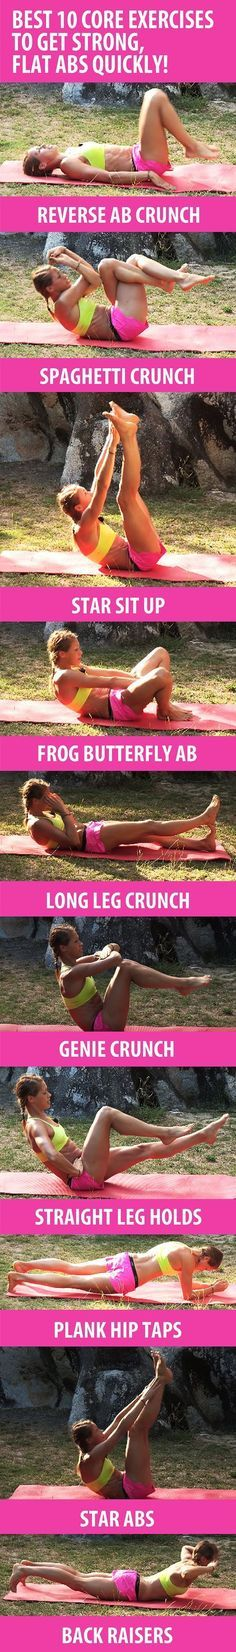 Great ab workout! #fitness #abs | Posted By: NewHowtoLoseBellyFat.com |